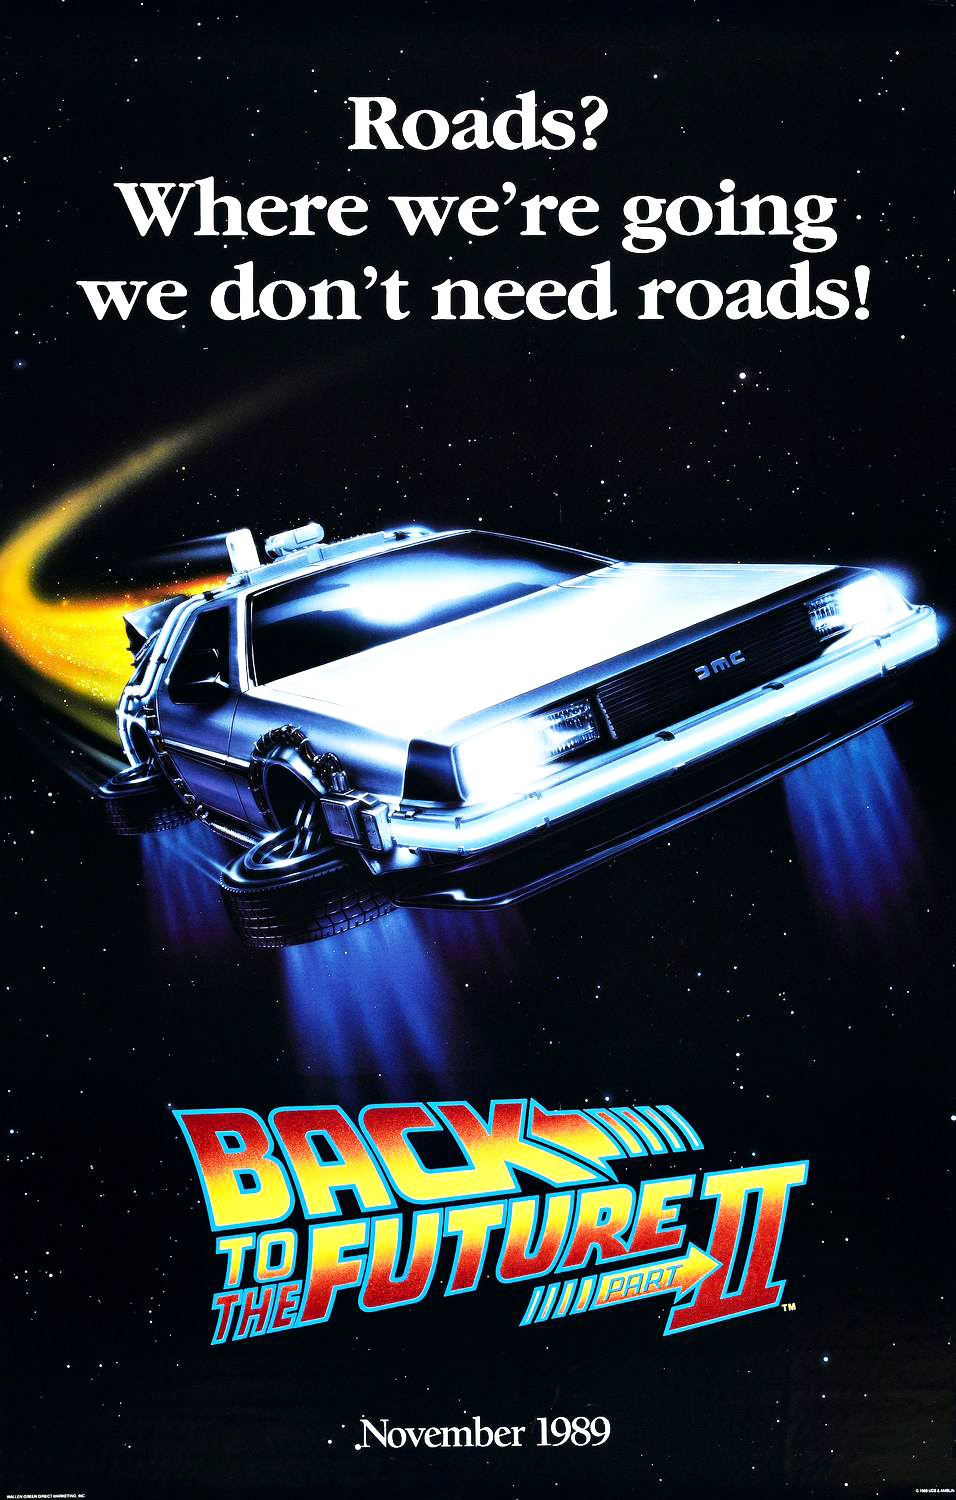 Geeky nerfherder movie poster art back to the future part ii 1989